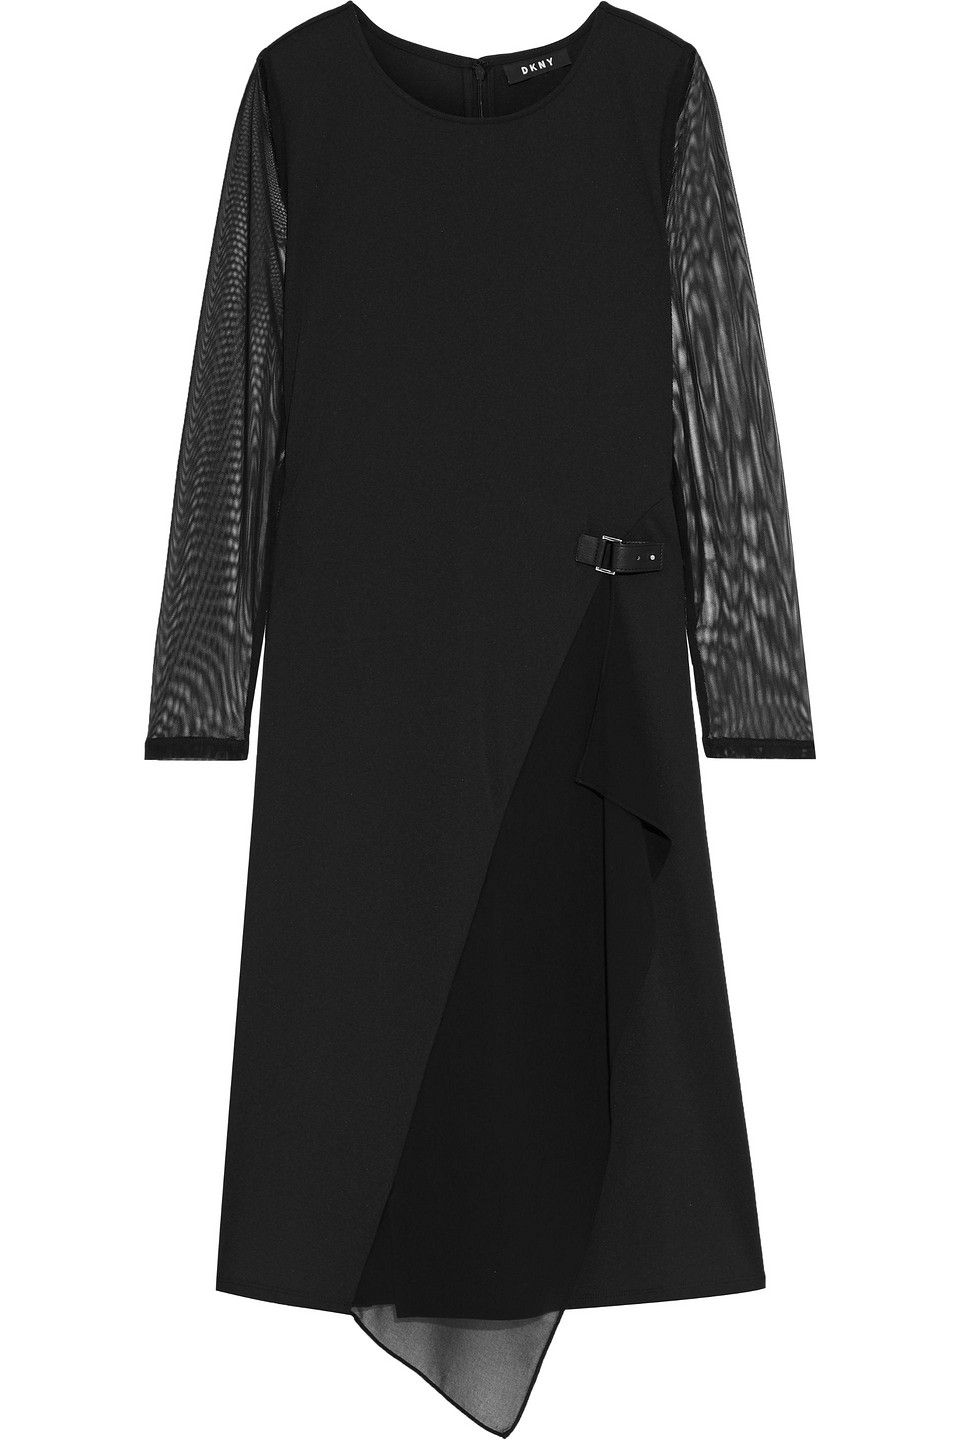 DKNY | Dkny Woman Tulle And Georgette-paneled Jersey Dress Black | Clouty